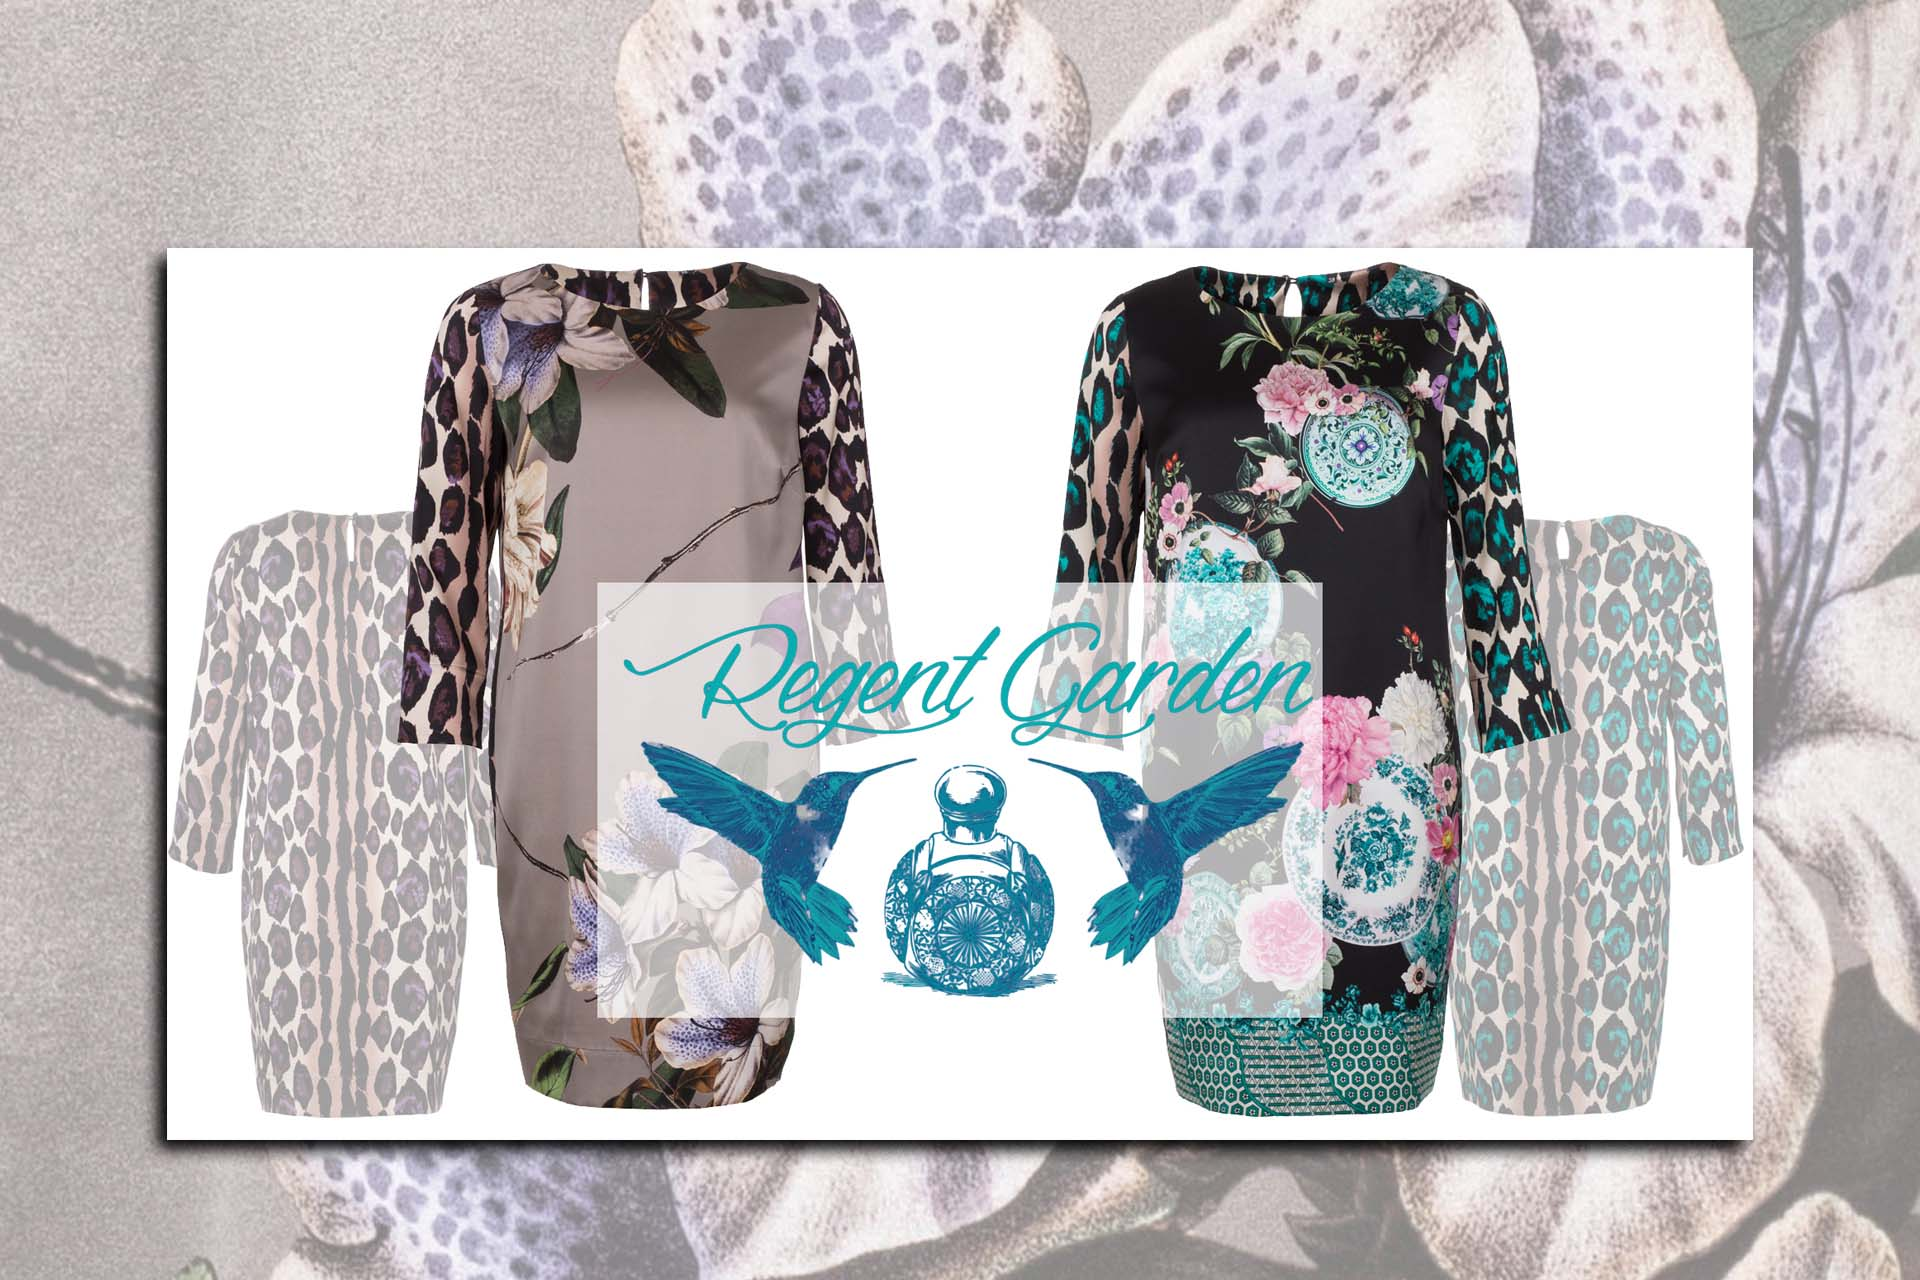 Fashion Concepts by Stout BV presents: Regent Garden